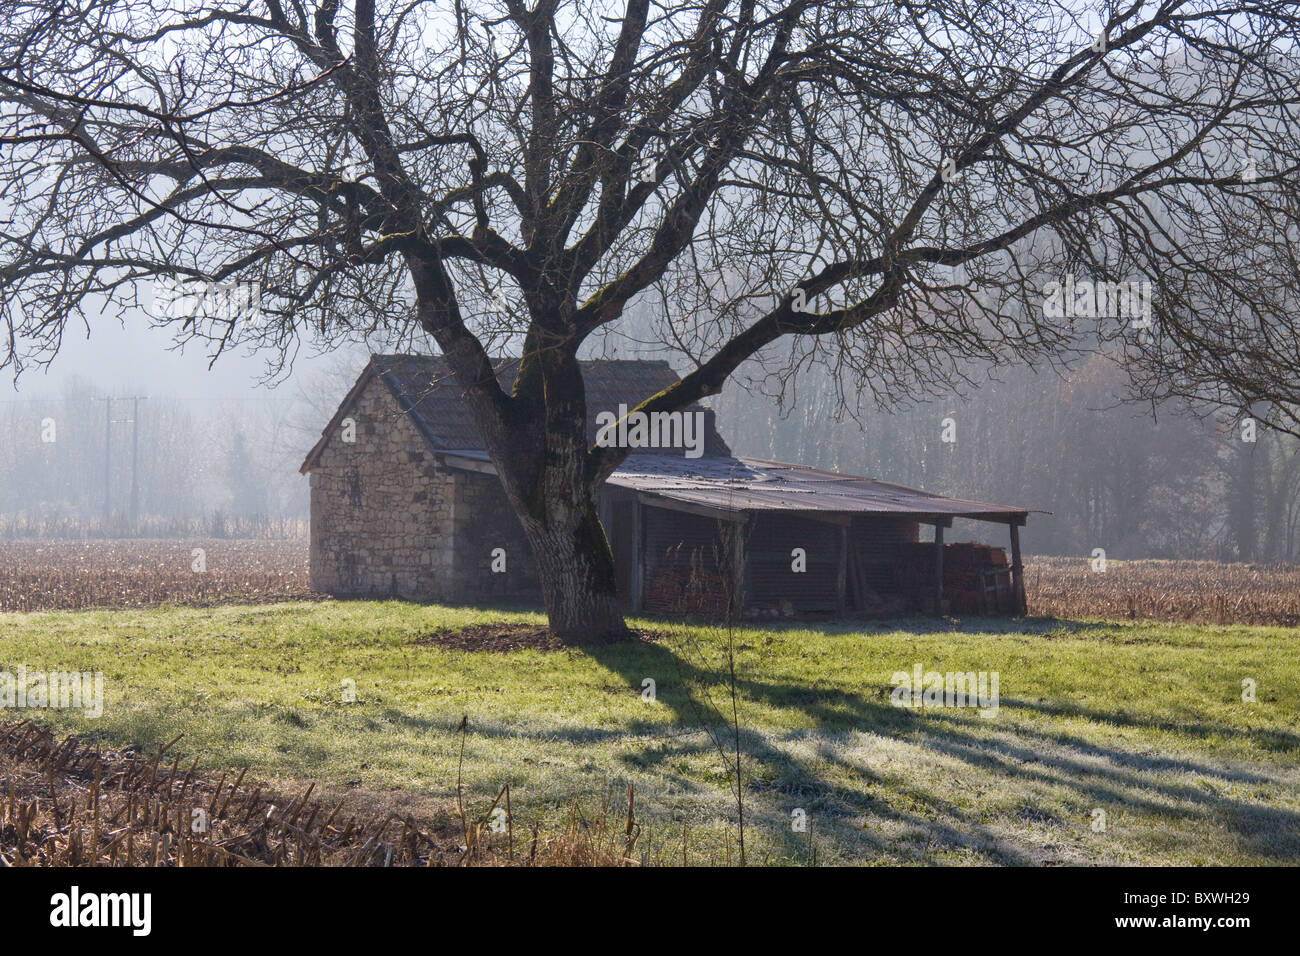 Agricultural building on a smallholding - Stock Image